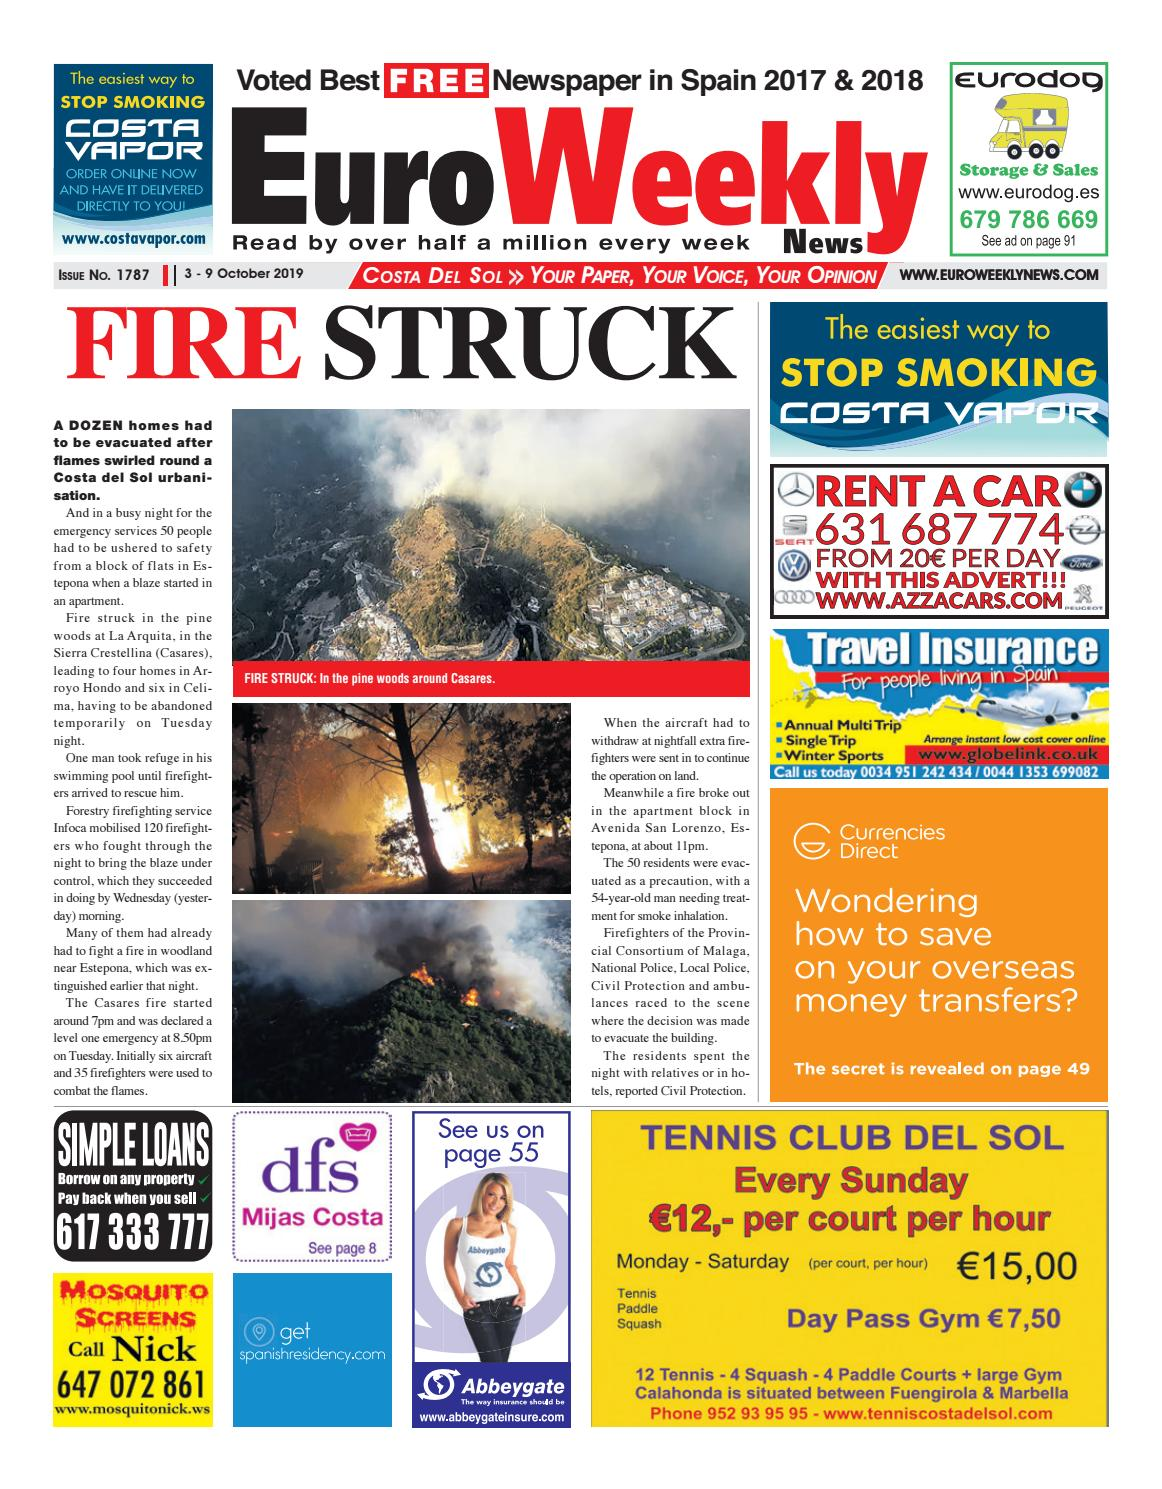 Euro Weekly News Costa Del Sol 3 9 October 2019 Issue 1787 By Euro Weekly News Media S A Issuu